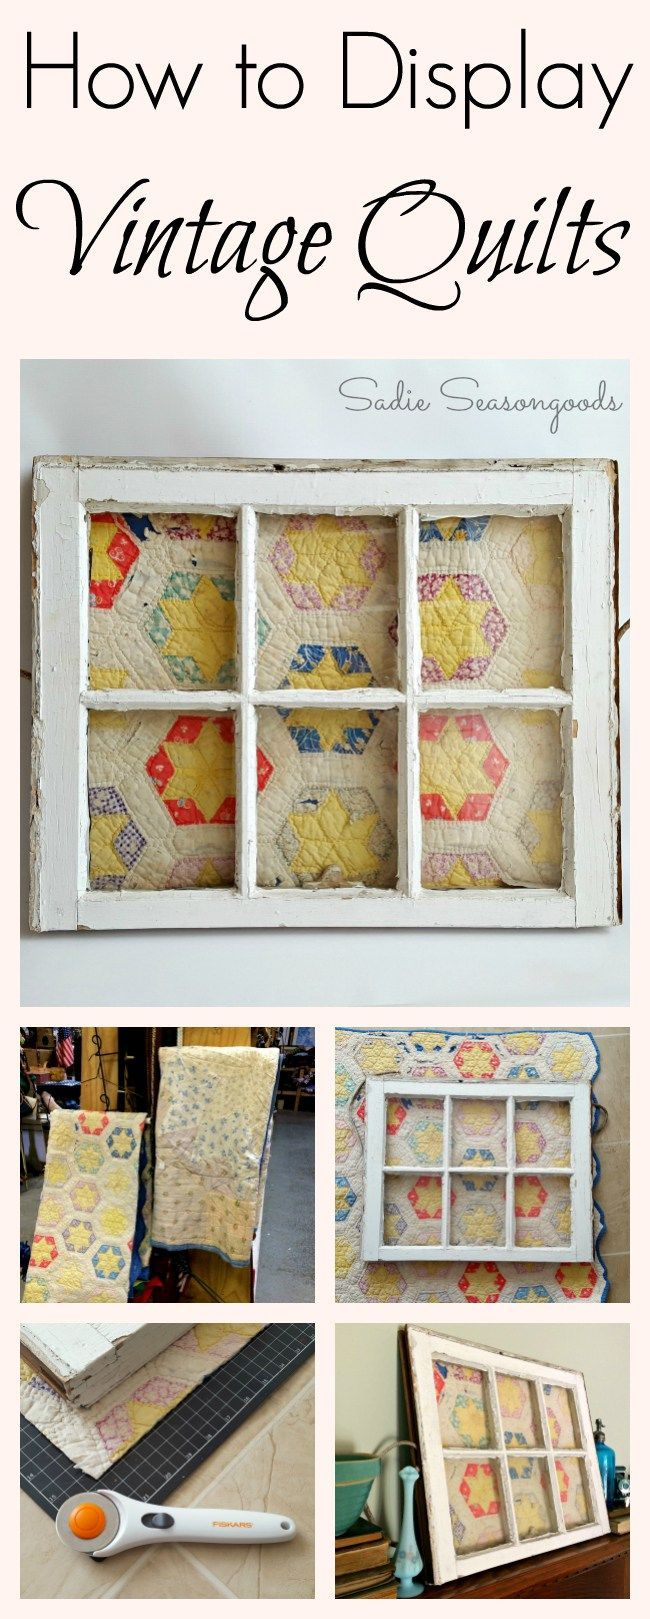 How to Repurpose a Vintage Quilt using a Salvaged Window | Quilting ...